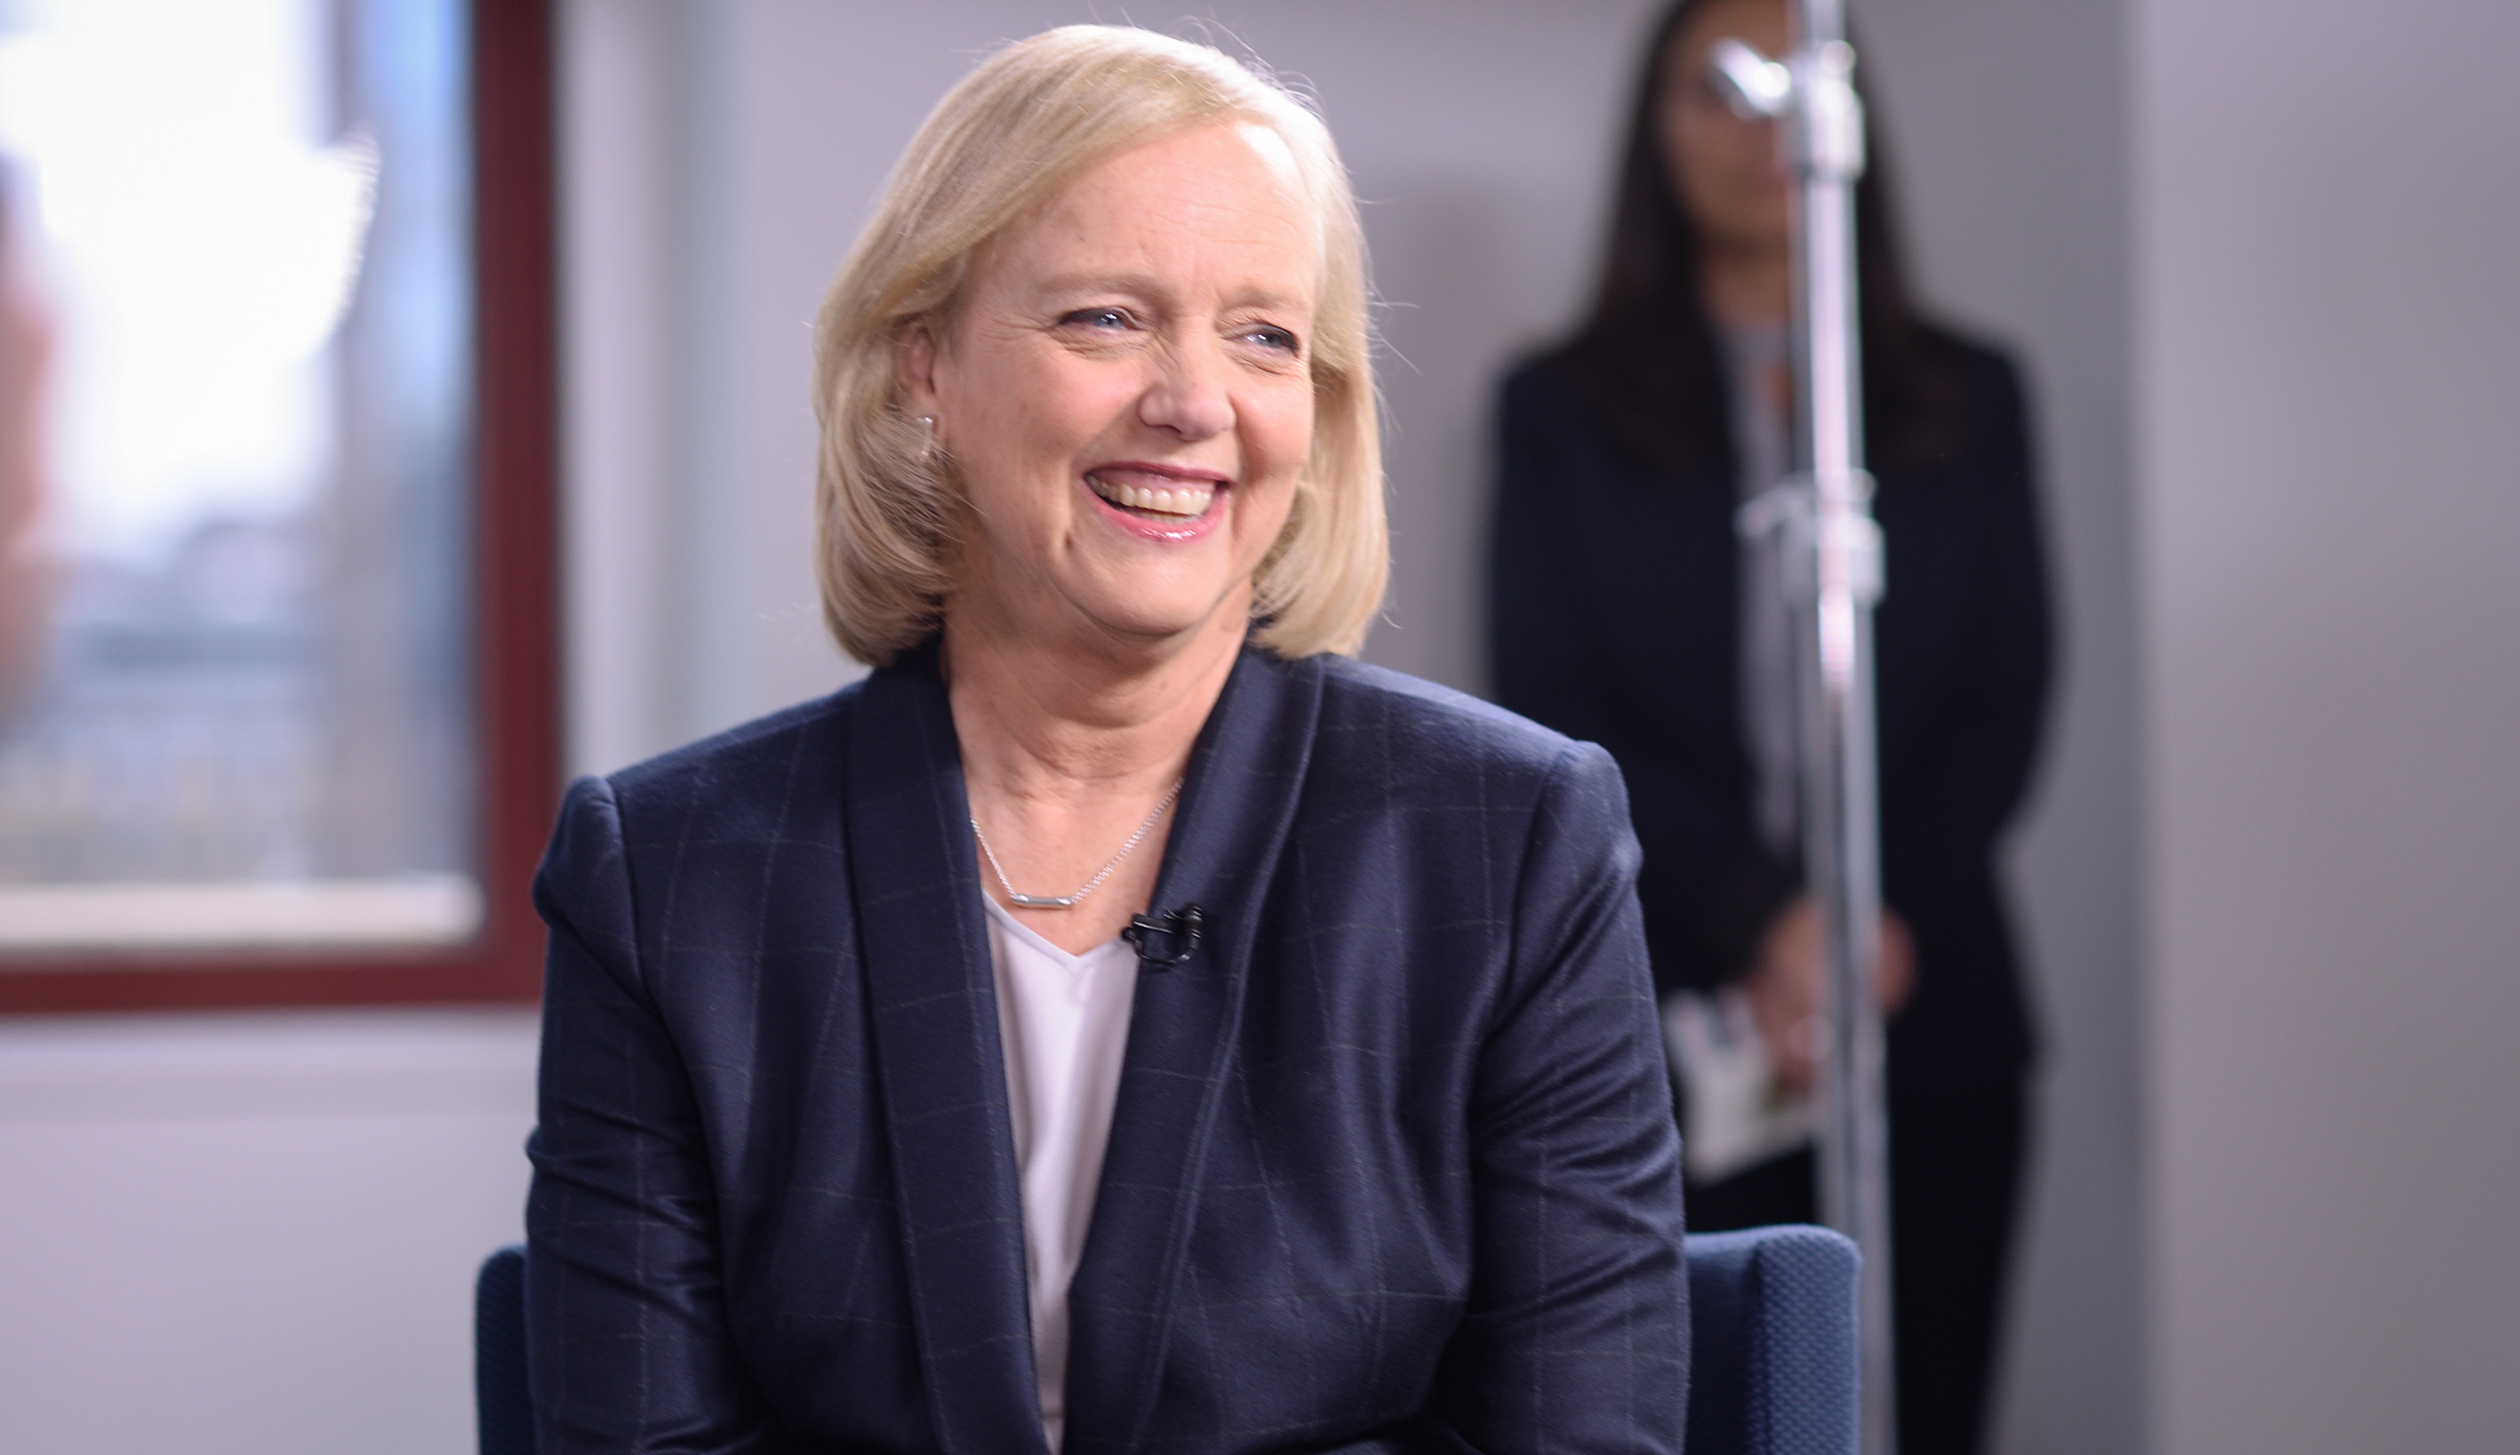 Hewlett Packard Enterprise CEO Meg Whitman In Conversation With LinkedIn Executive Editor Dan Roth